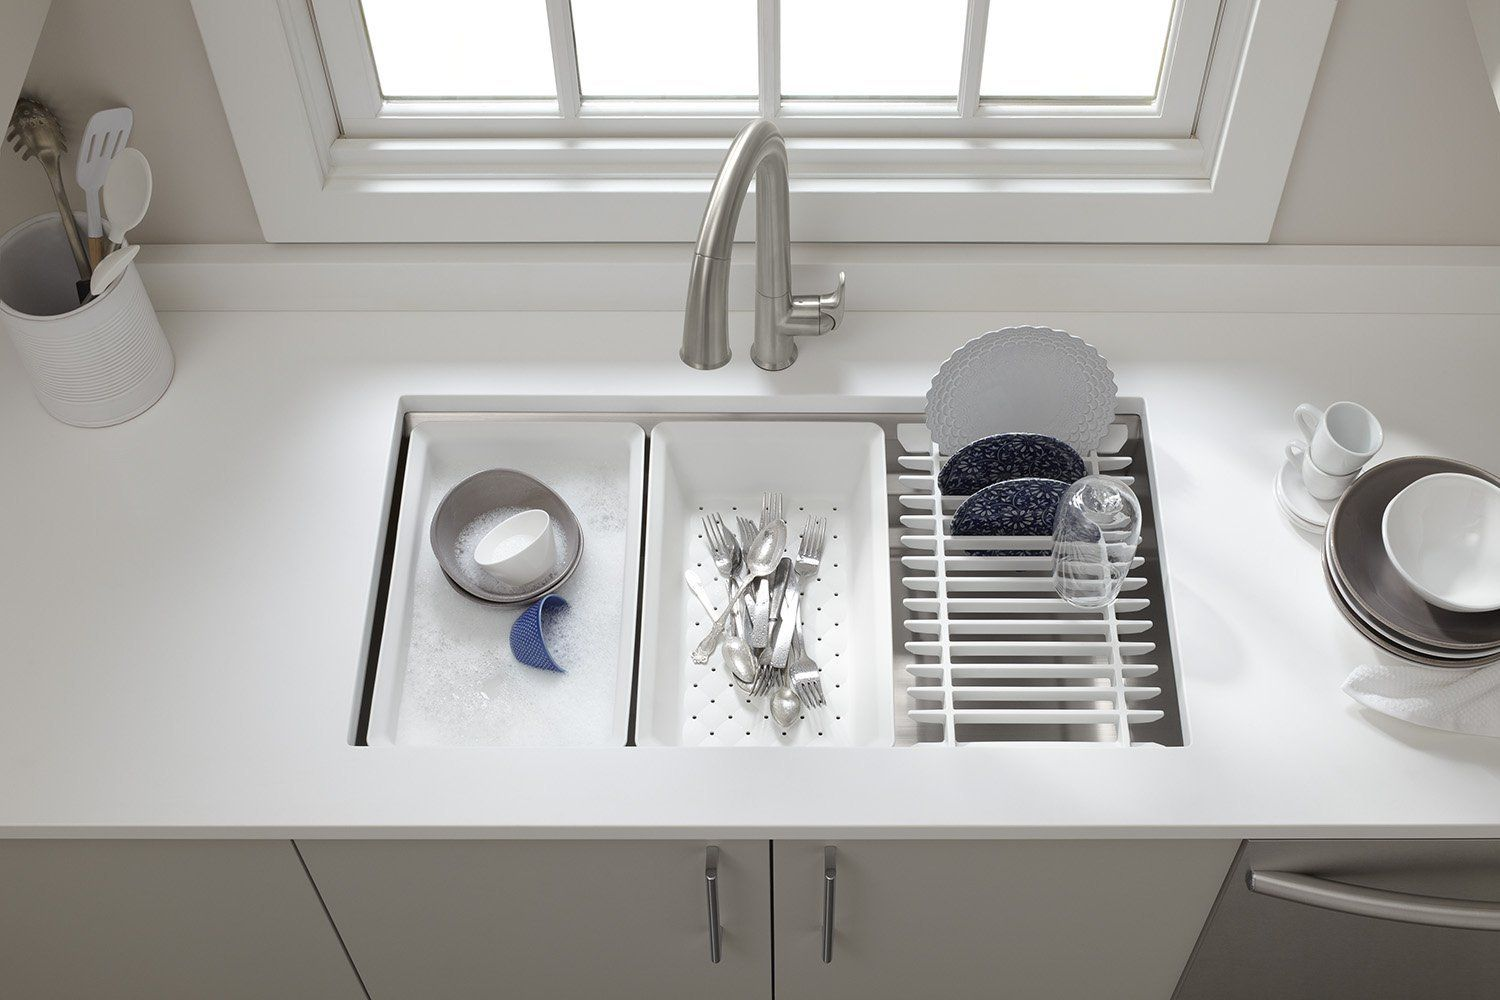 13 Organization Tips That Keep Countertops Clear - Kitchen ... on kitchen closet organization ideas, kitchen backsplash ideas, kitchen counter organizers, kitchen drawer organization ideas, kitchen counter ideas, kitchen wall organization ideas, kitchen pantry storage ideas, budget-friendly countertop ideas, paint organization ideas, kitchen organizational ideas, kitchen desk organization ideas, rustic country kitchen decorating ideas, refrigerator organization ideas, kitchen plate organization ideas, kitchen theme ideas, small kitchen organizing ideas, kitchen cabinet storage ideas, kitchen island organization ideas, kitchen islands with storage ideas, office supply organization ideas,